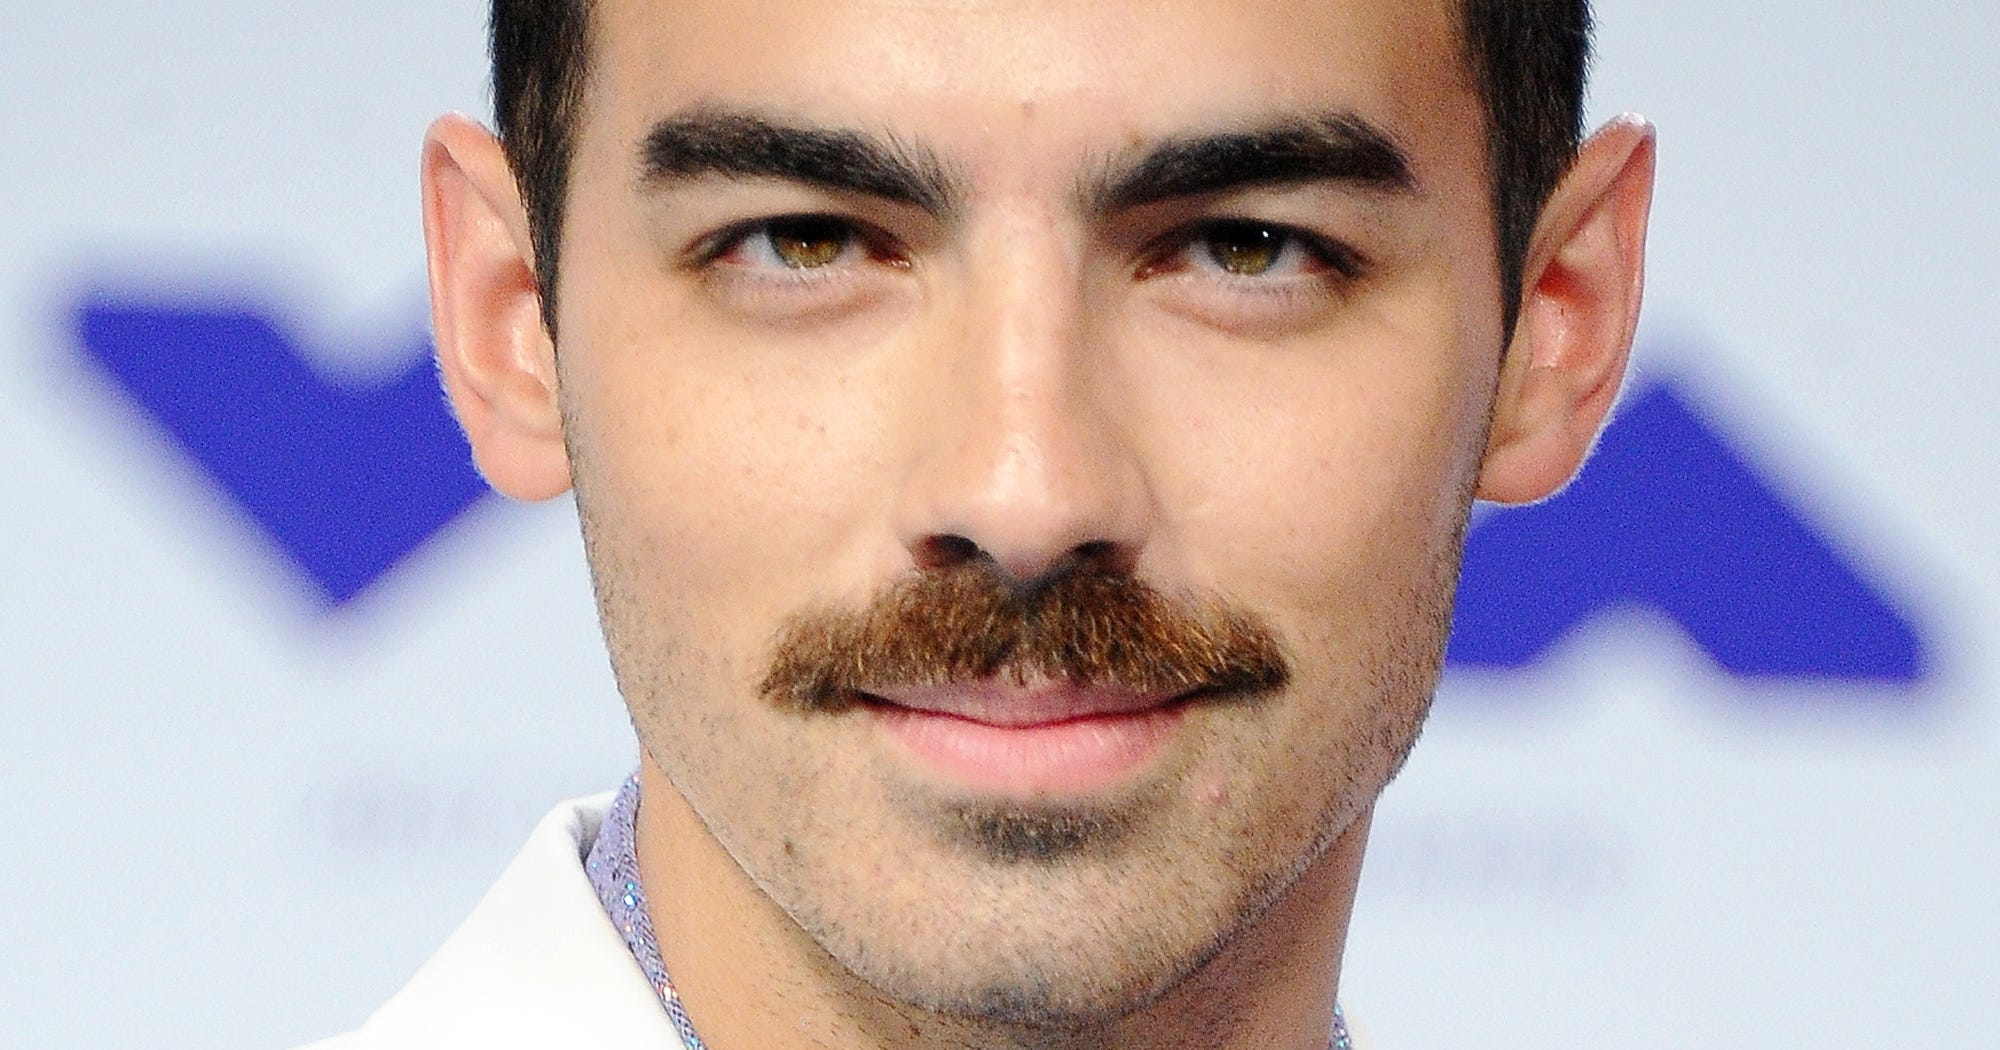 Joe Jonas New Mustache Photos VMA Trend Celebrity Men